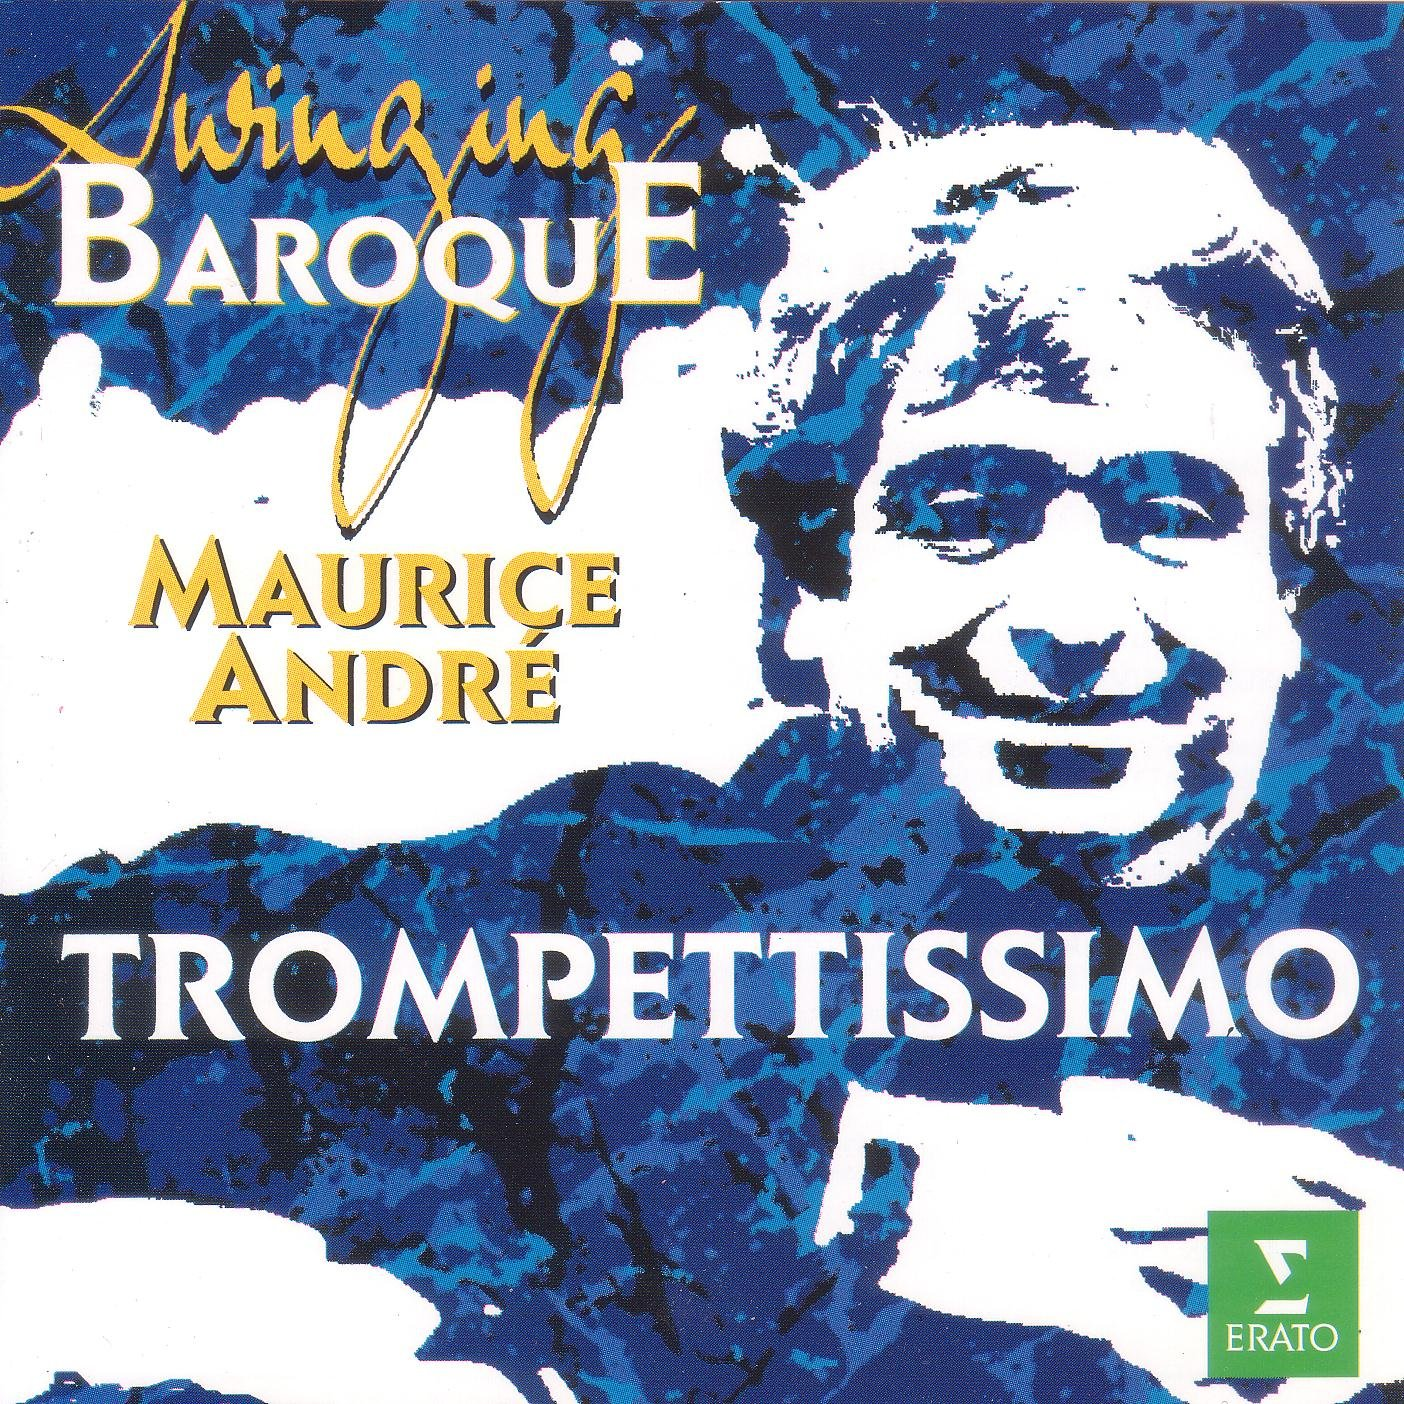 1993 - Maurice André - Trompettissimo (Double Check this).jpg